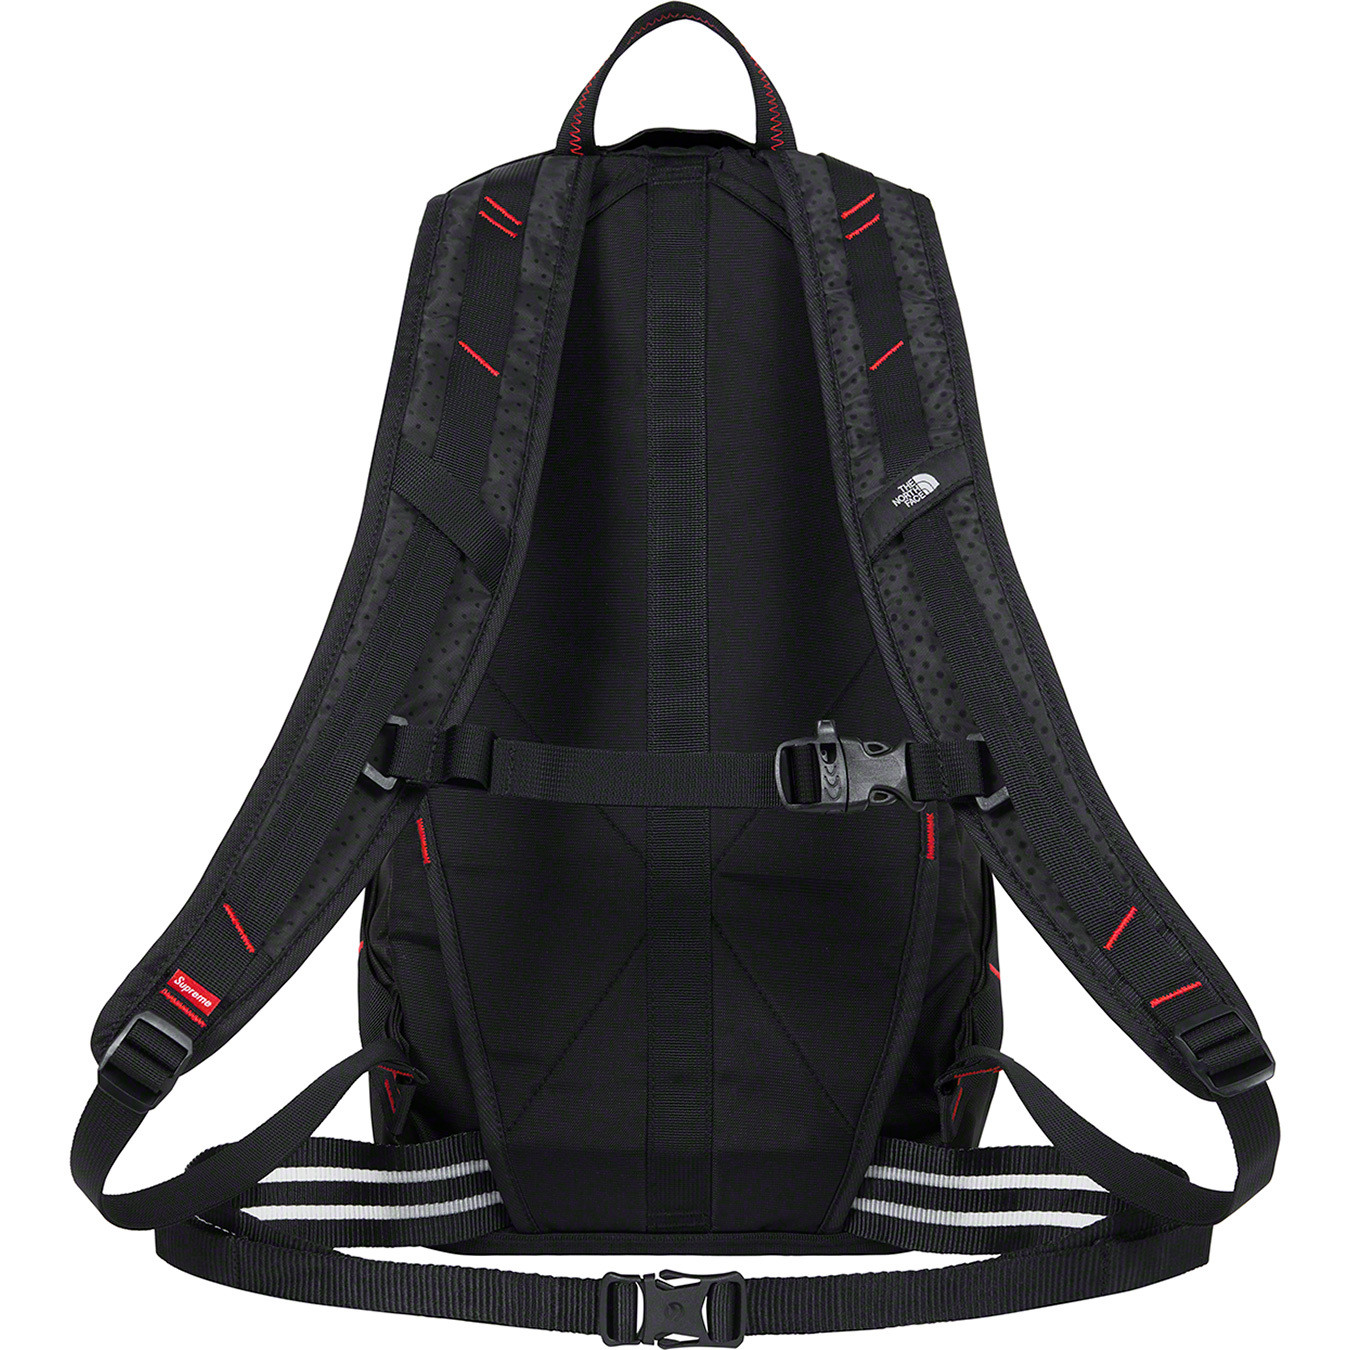 supreme-the-north-face-summit-series-outer-tape-seam-collection-release-21ss-20210529-week14-route-rocket-backpack